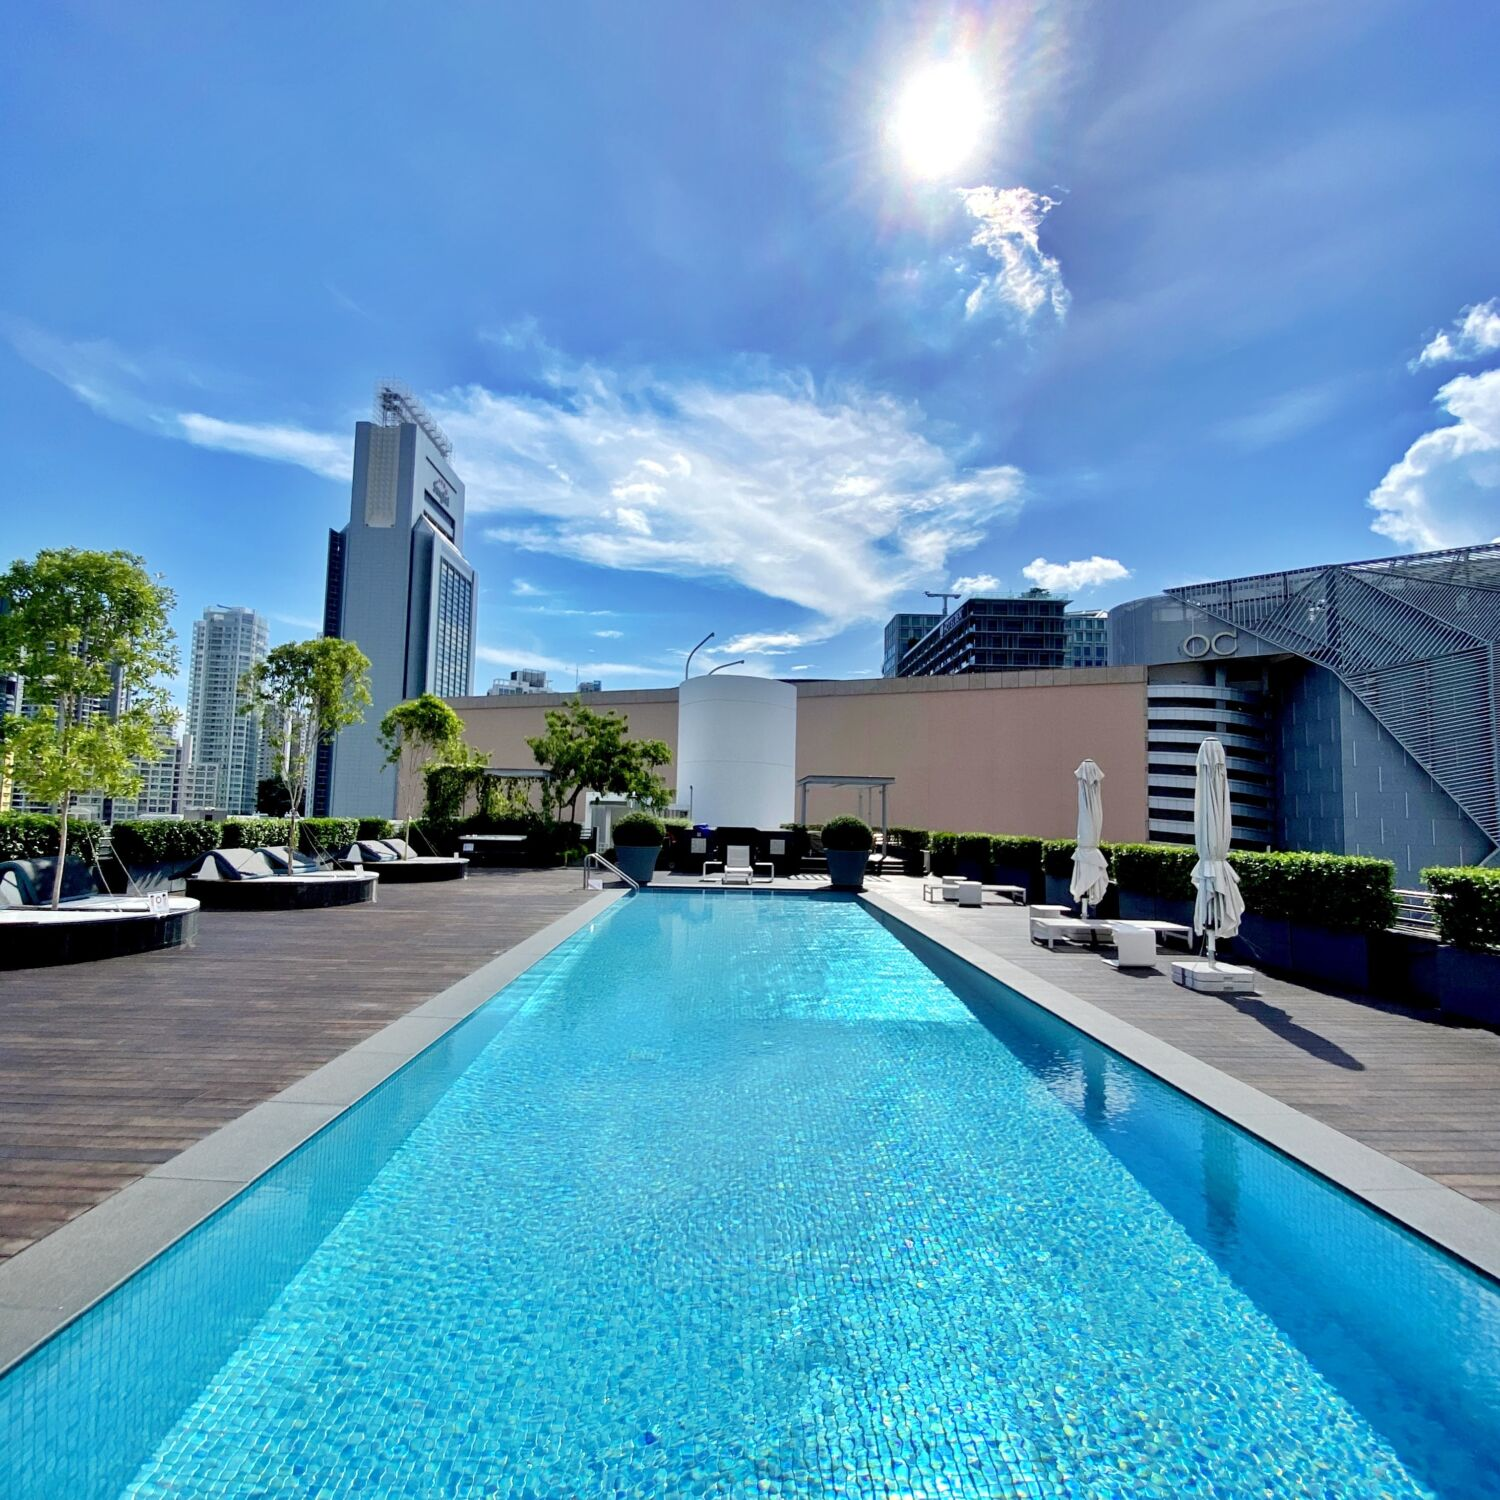 Winsland Serviced Suites by Lanson Place Rooftop Pool